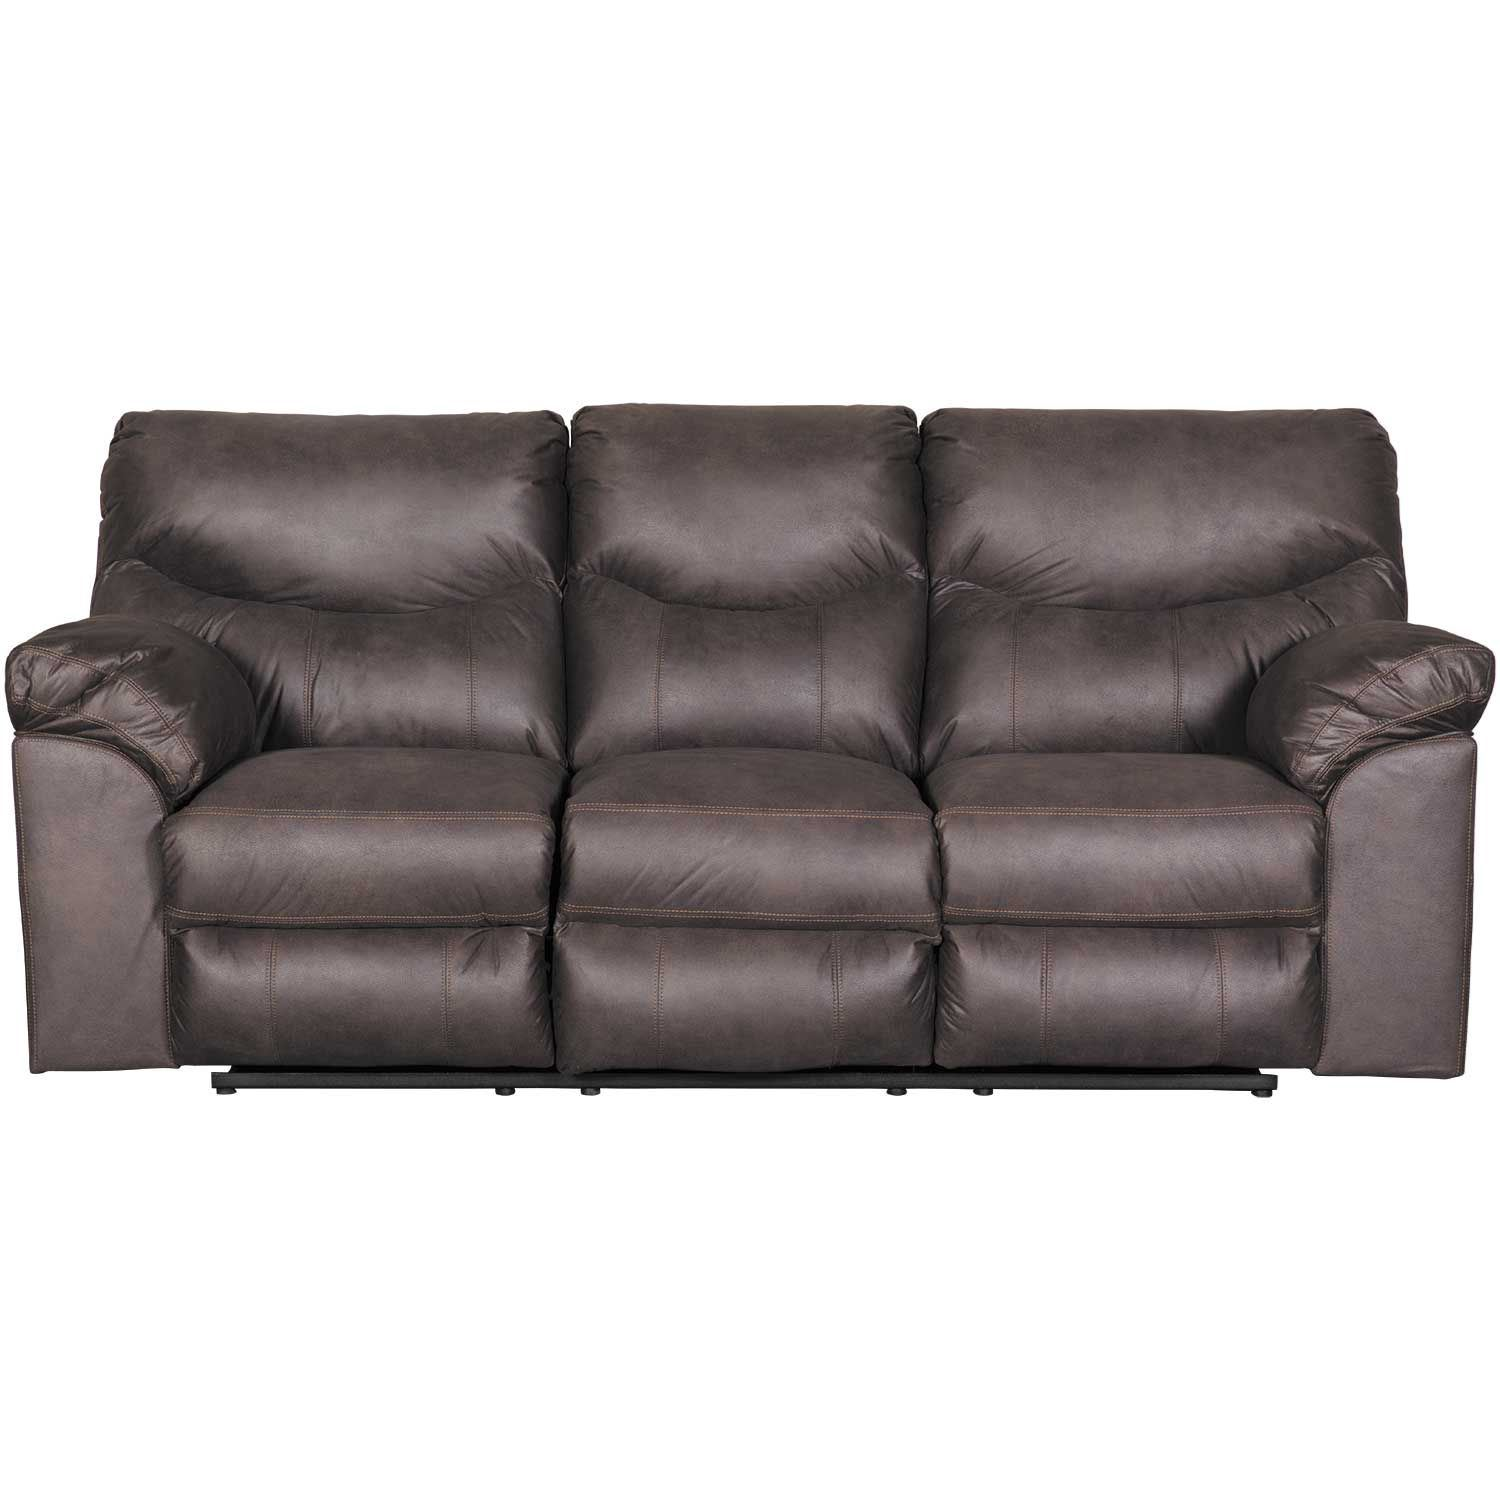 Boxberg Teak Power Reclining Sofa 3380387 Ashley